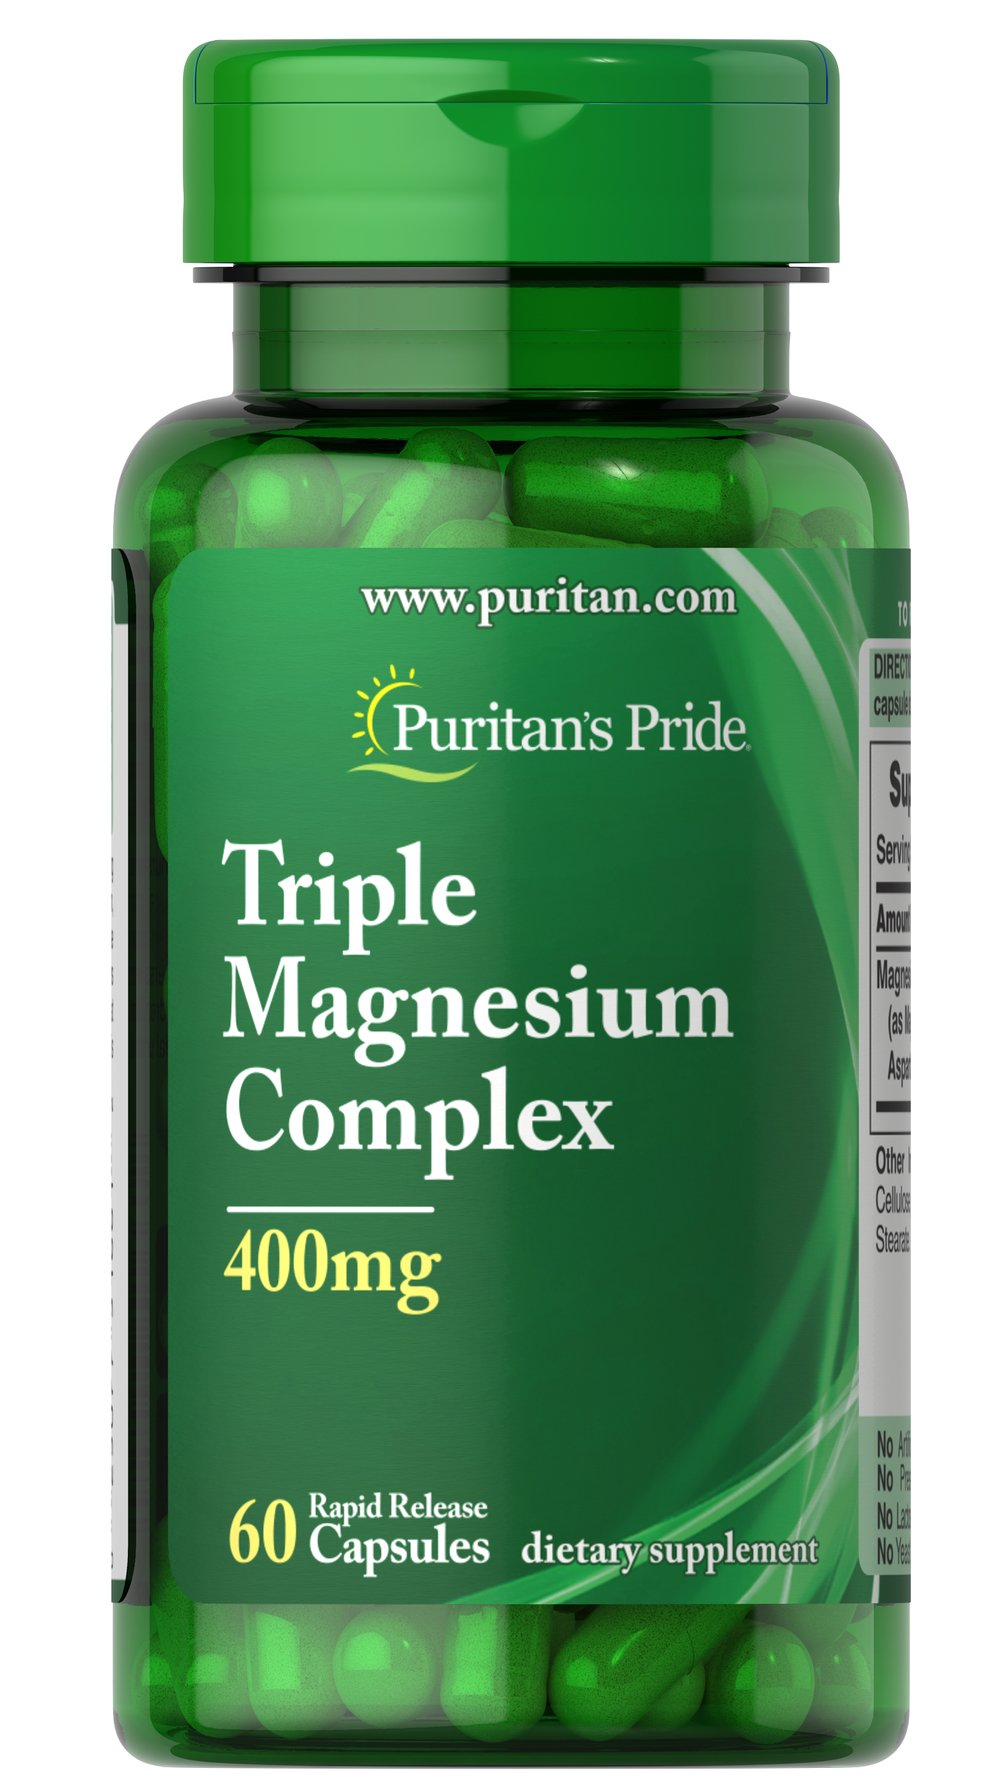 Triple Magnesium Complex 400 mg <p>Promotes bone health.**</p> <p>Contains Magnesium Oxide, Aspartate and Citrate.</p> <p>Rapid release.</p> <p>Triple Magnesium Complex helps maintain healthy bones in adults.** This dietary supplement supports bone health, and plays a role in the regulation of Calcium.** Each capsule has 400 mg of our Magnesium complex consisting of Magnesium Oxide, Magnesium Aspartate and Magnesium Citrate. Includes 60 rapid release cap